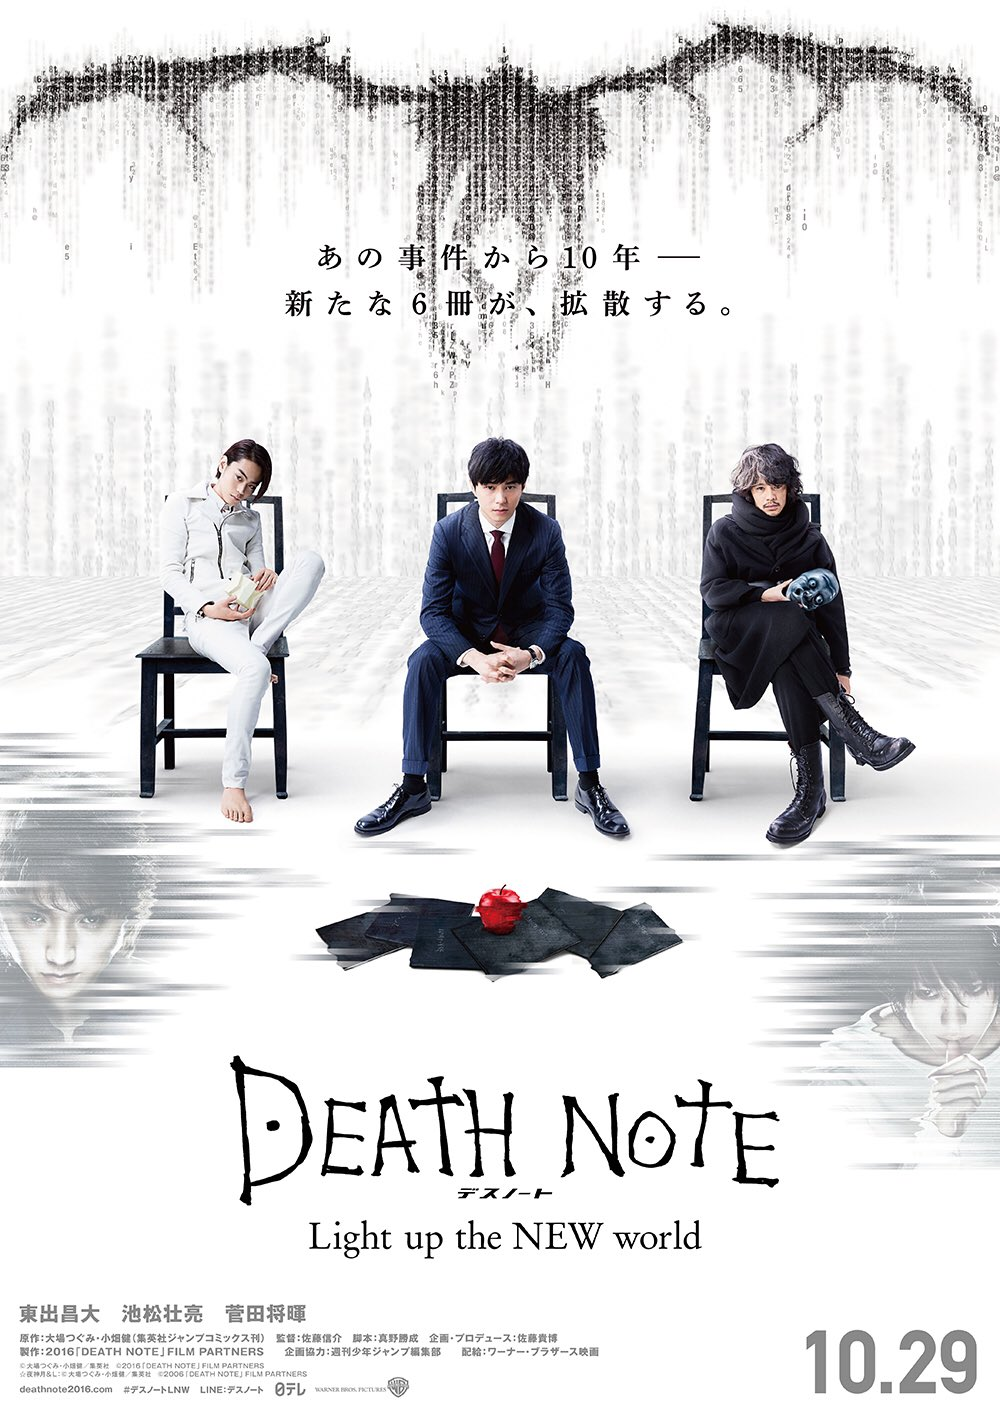 death_note_light_up_the_new_world_poster_2016_01.jpg